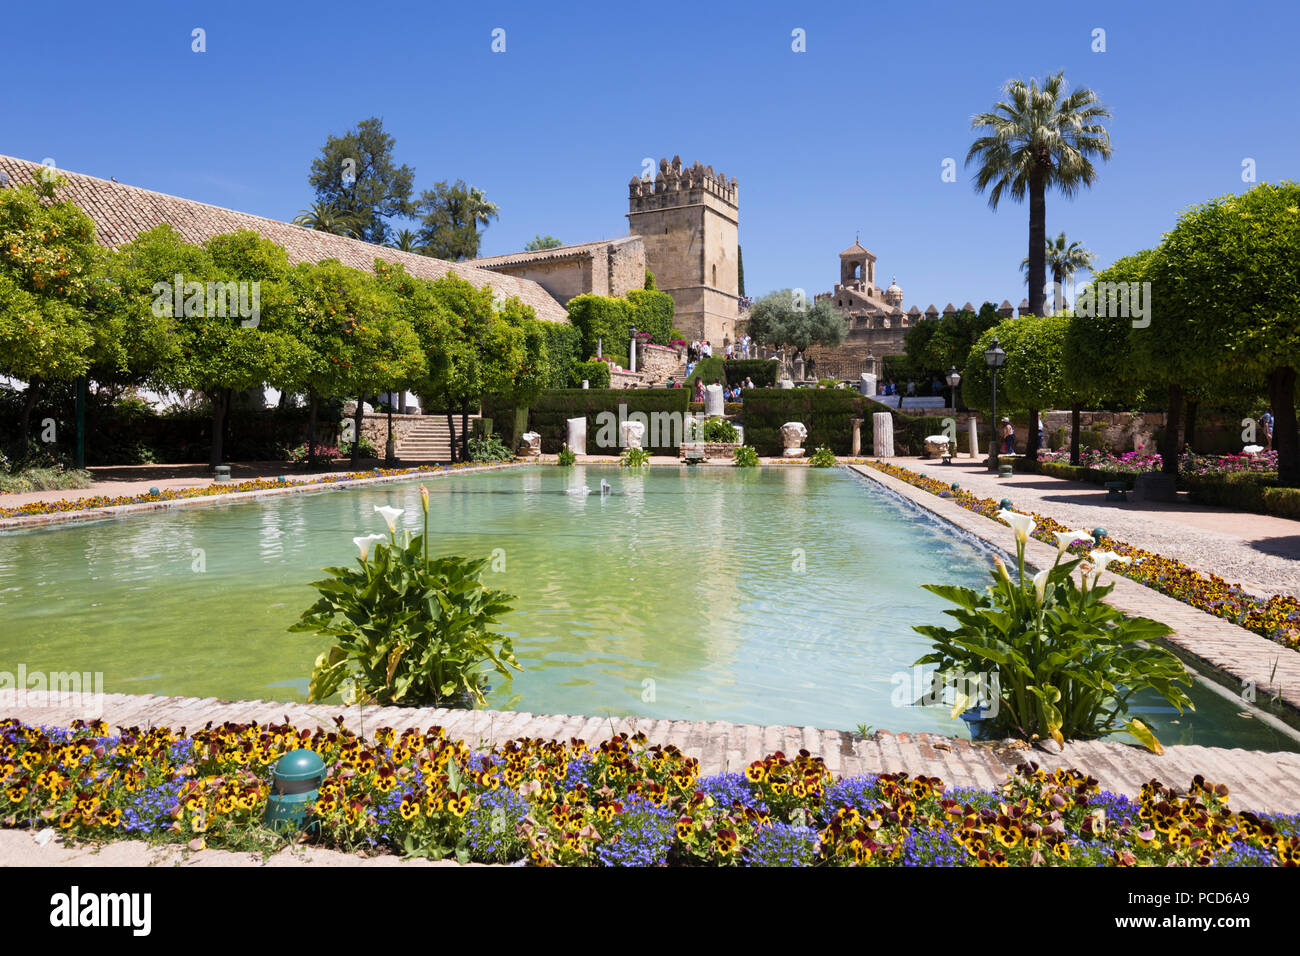 Gardens of the Alcazar de Los Reyes Cristianos, UNESCO World Heritage Site, Cordoba, Andalucia, Spain, Europe - Stock Image